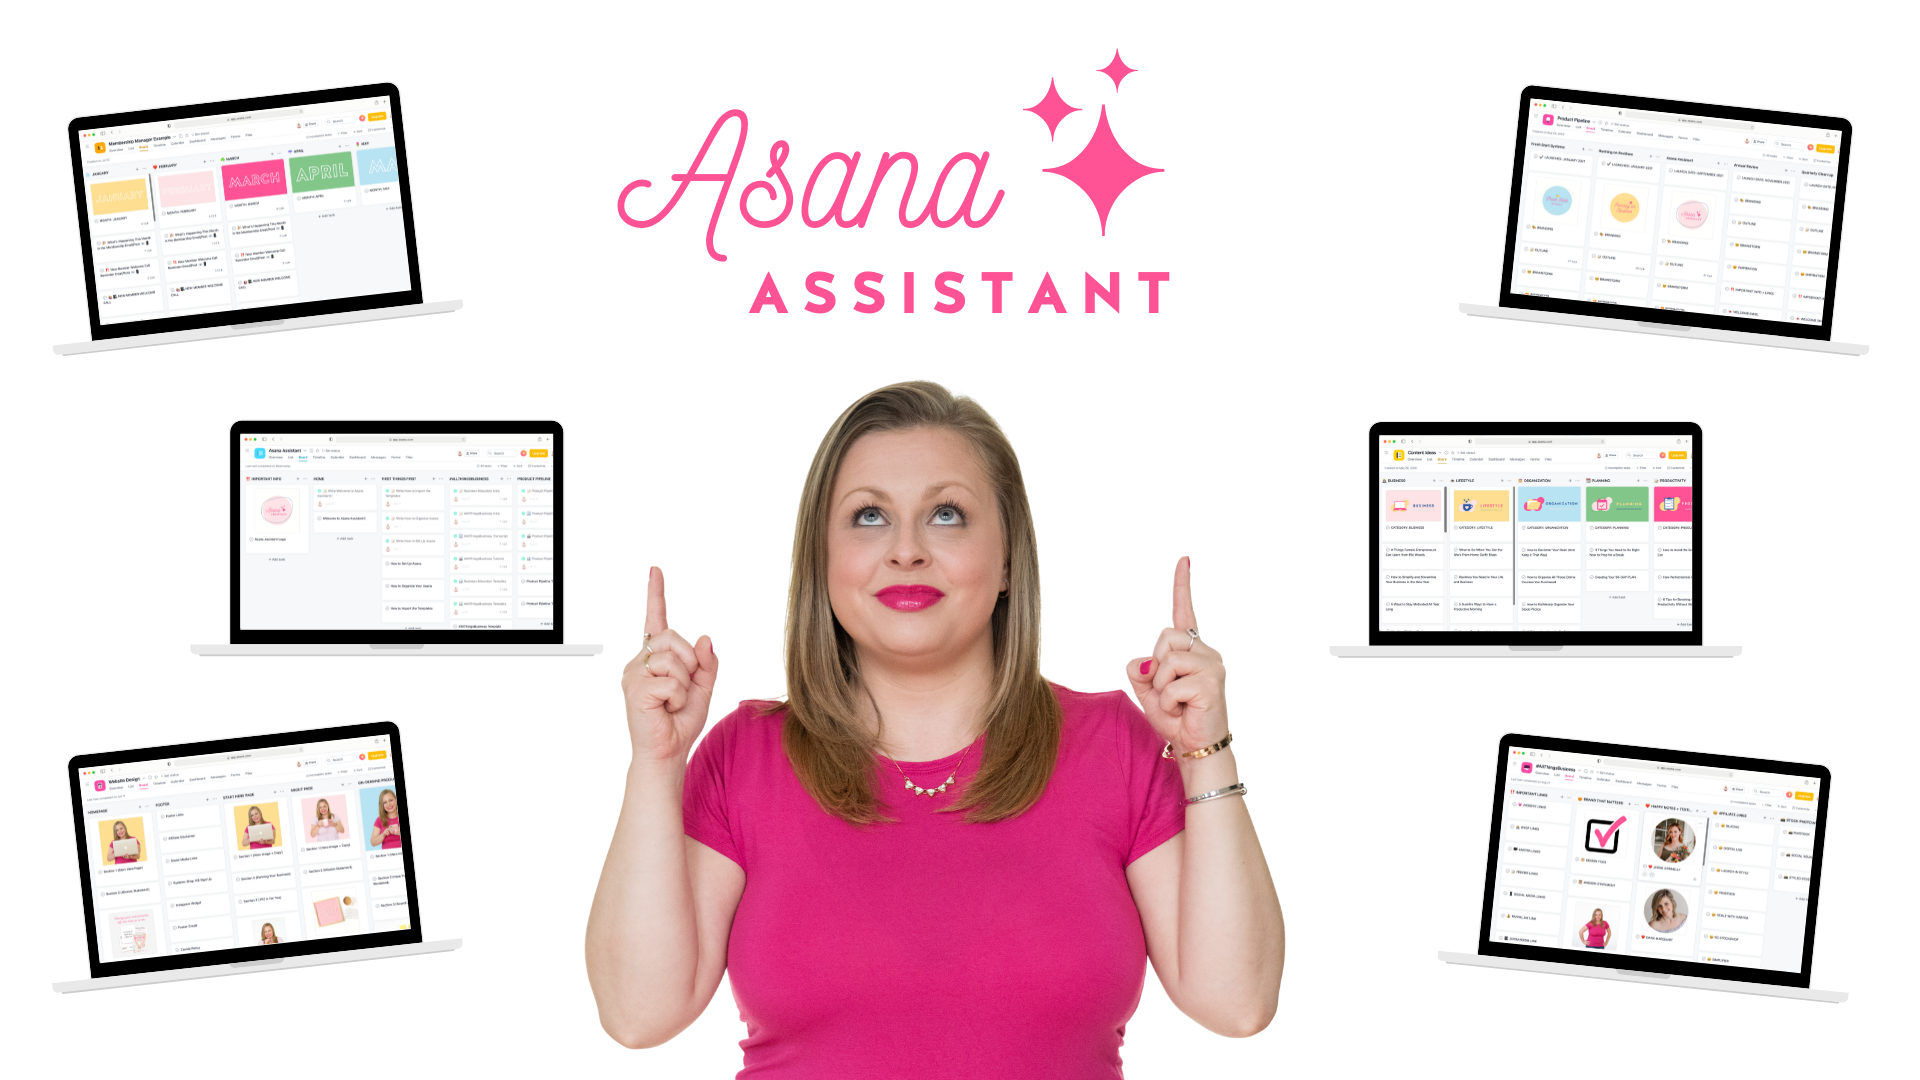 Alexandra of The Productivity Zone in a hot pink t-shirt pointing up at the Asana Assistant logo surrounded by laptop mockups featuring her Asana Assistant templates